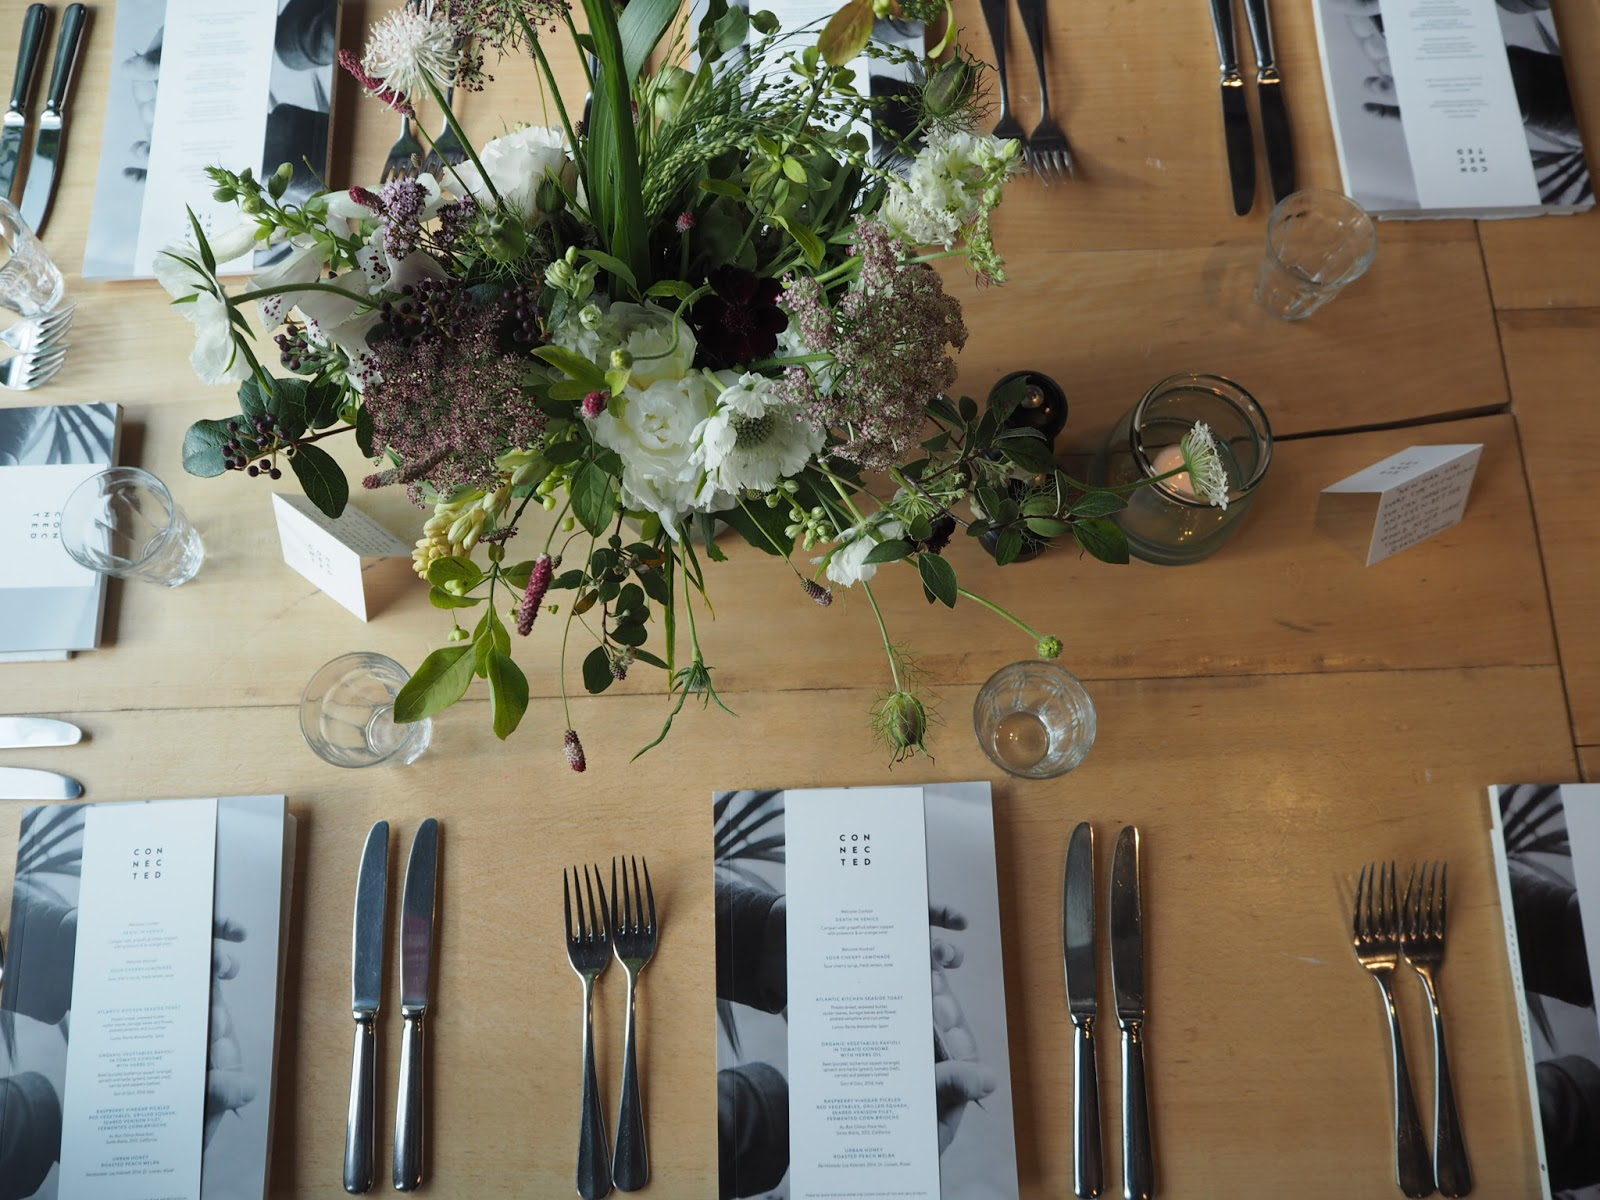 Floral table setting at Grain Store, London